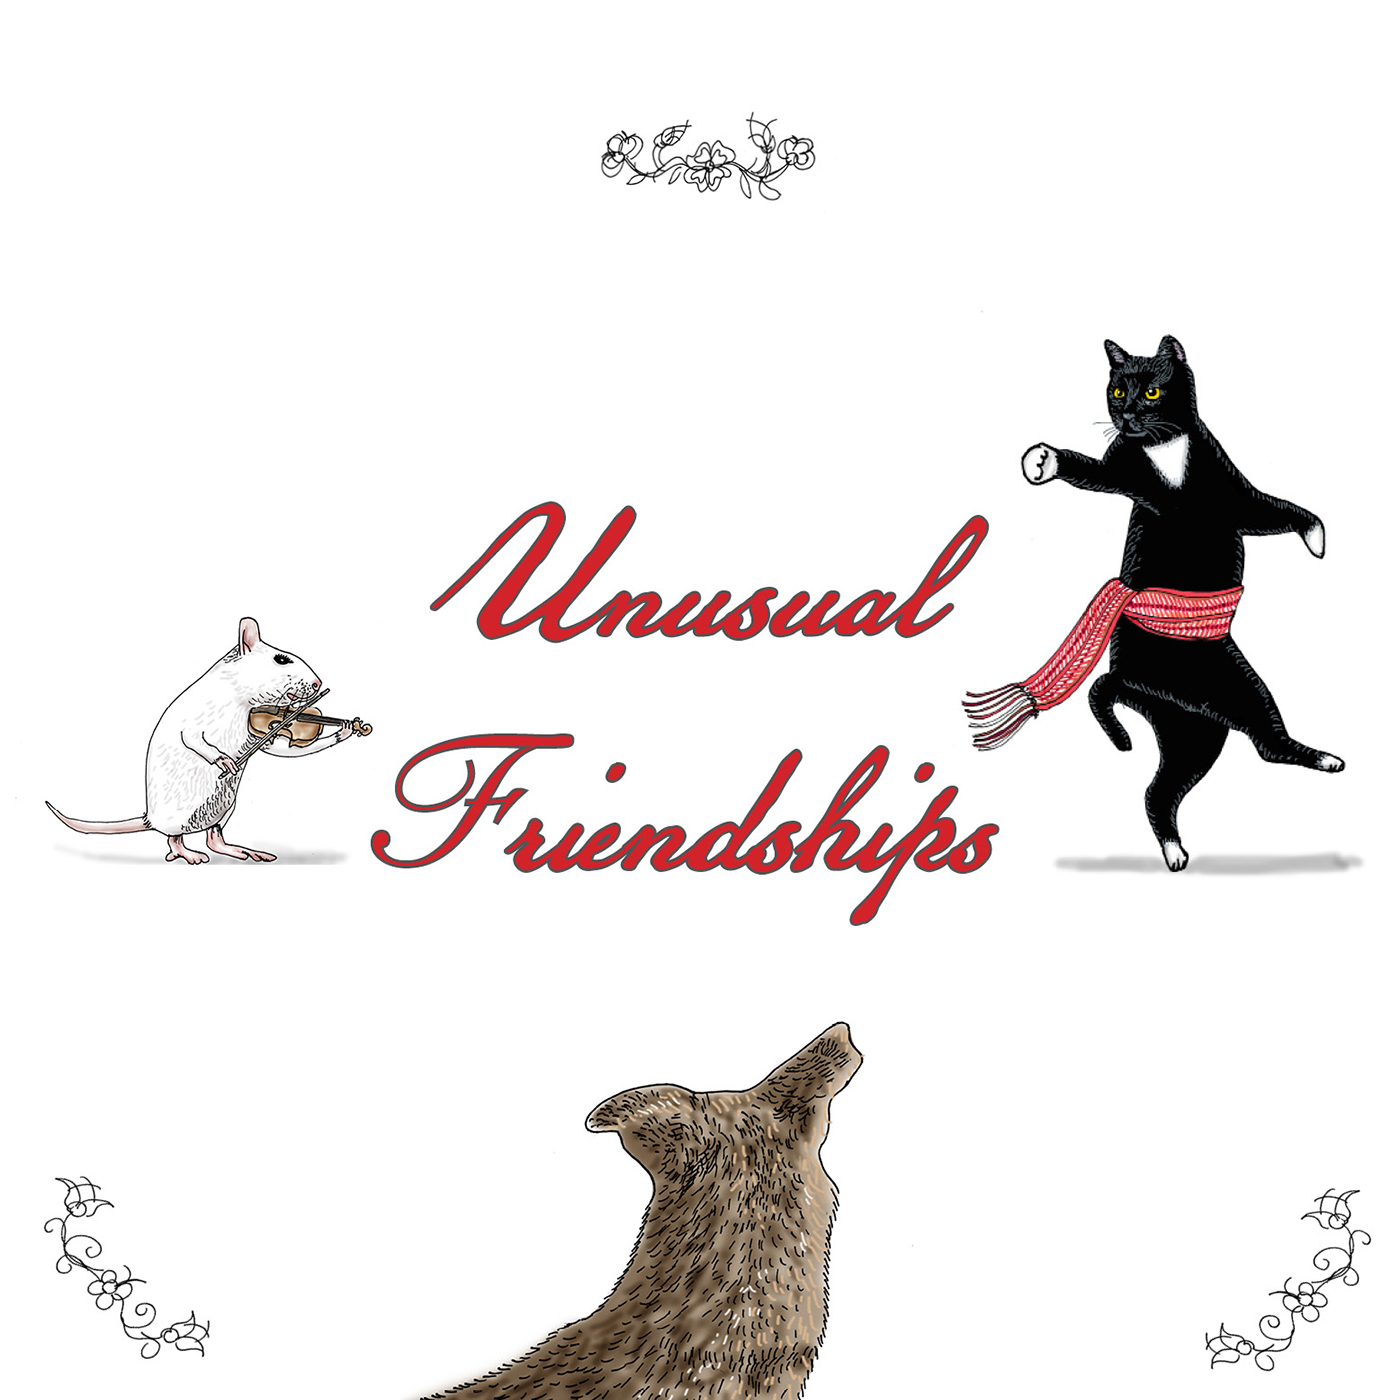 Unusual Friendships James Culleton